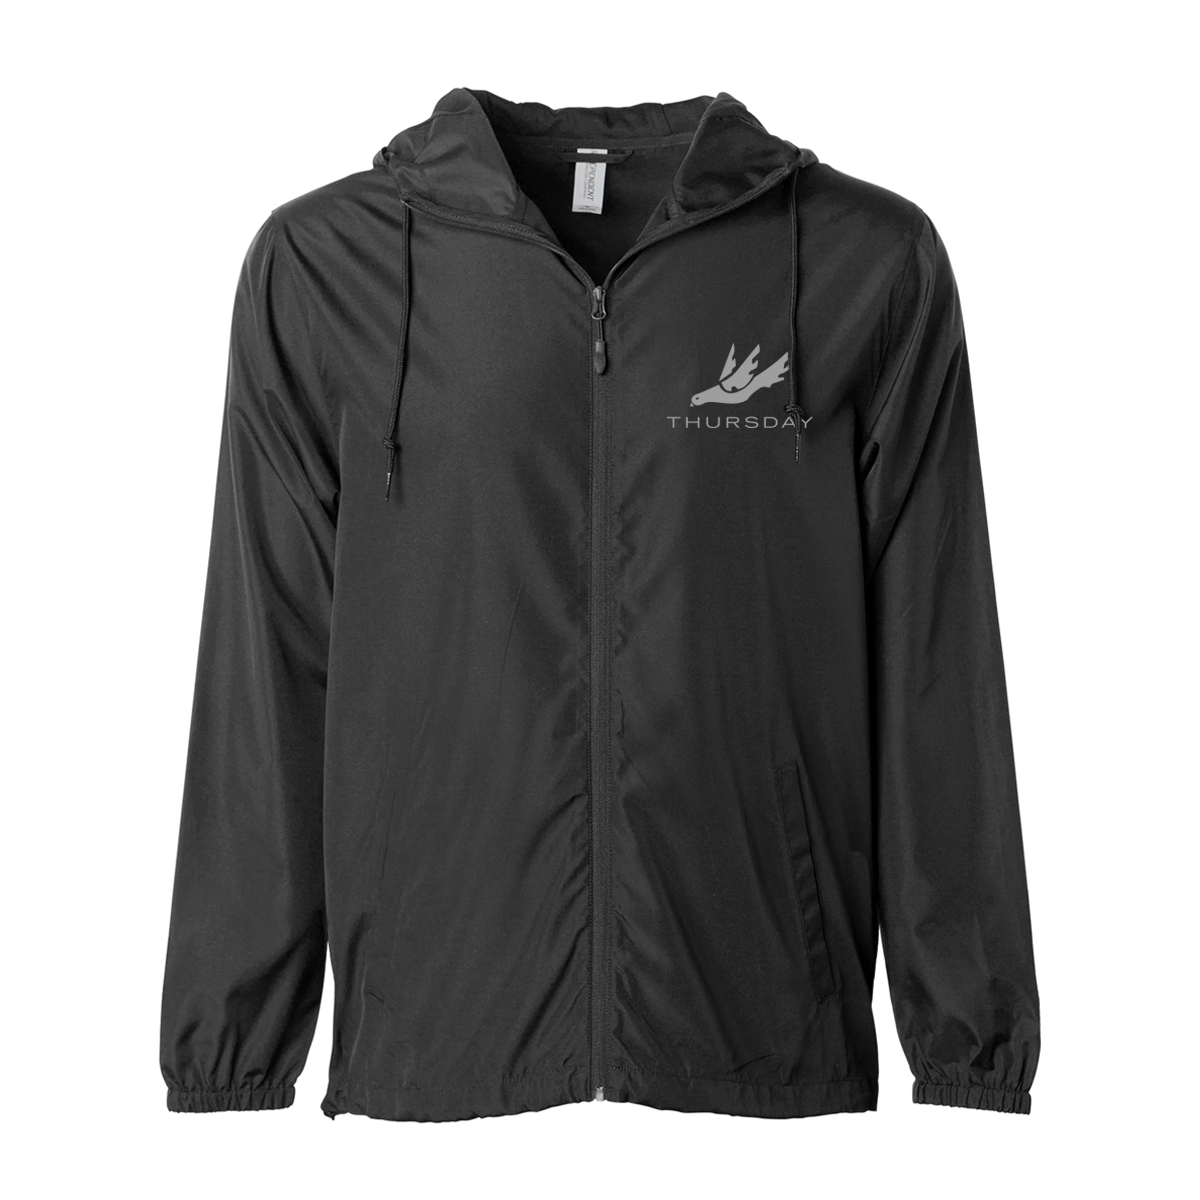 Running From The rain Reflective Jacket